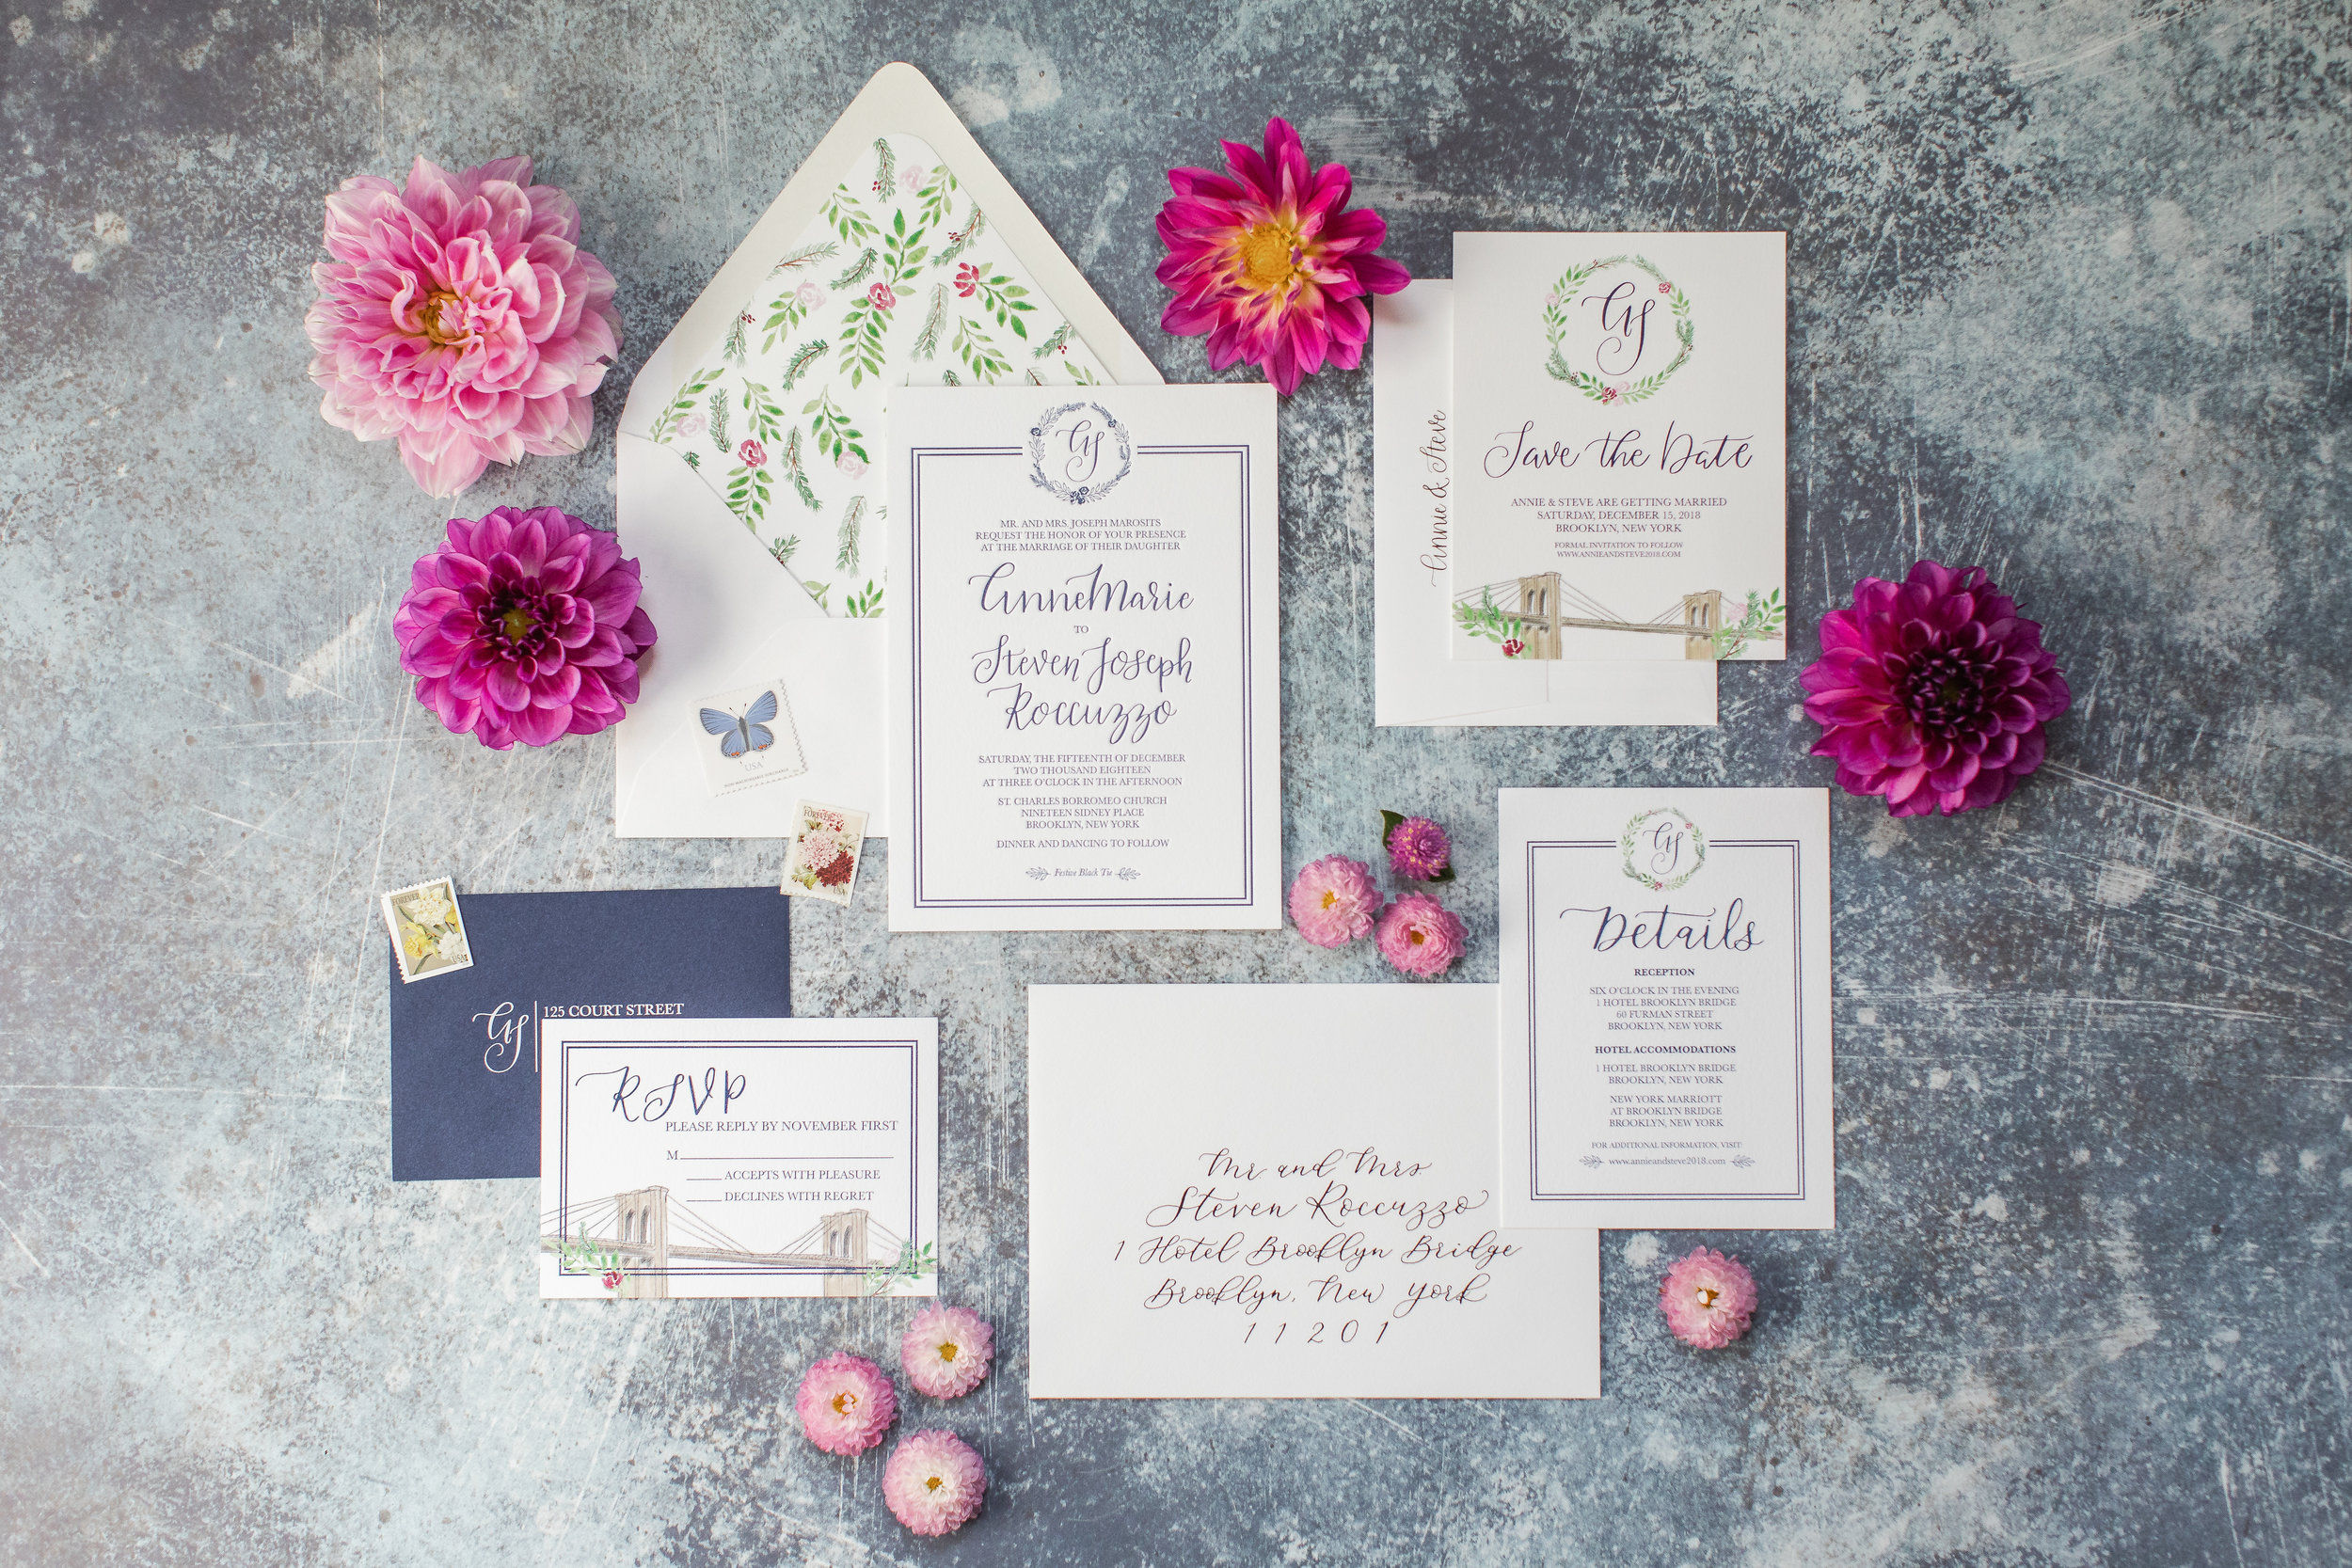 Elegant Letter Press Wedding Invitations with Watercolor Details